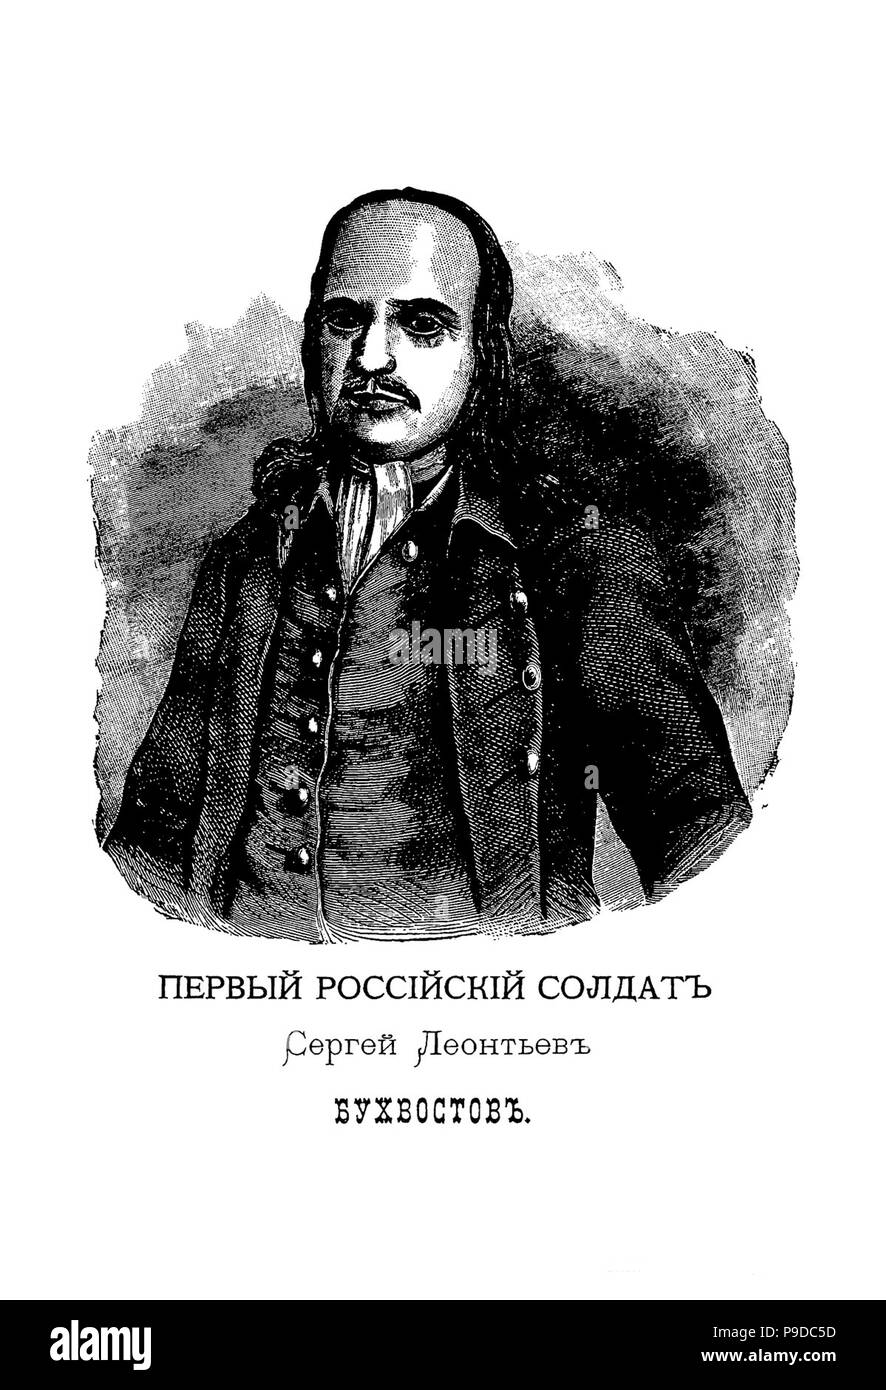 Sergei Leontievich Bukhvostov (1659-1728), first Russian soldier. Museum: Russian State Historical Library, Moscow. - Stock Image